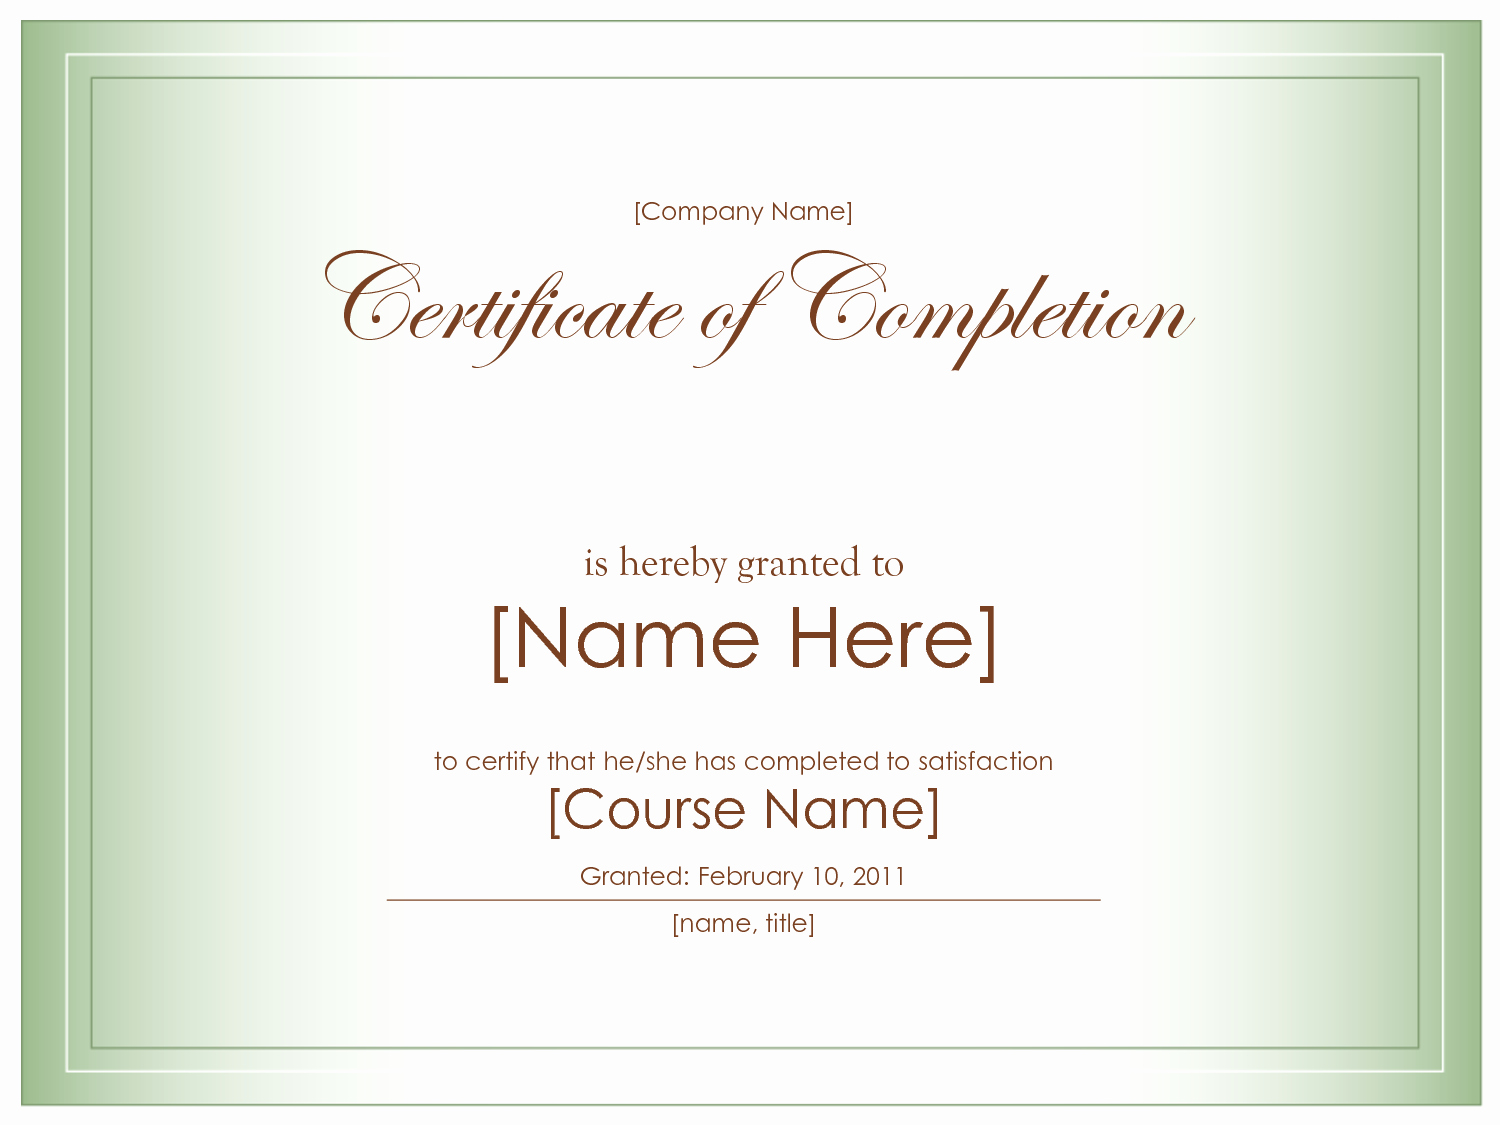 Blank Certificate Templates for Word Best Of Blank Certificate Templates to Print